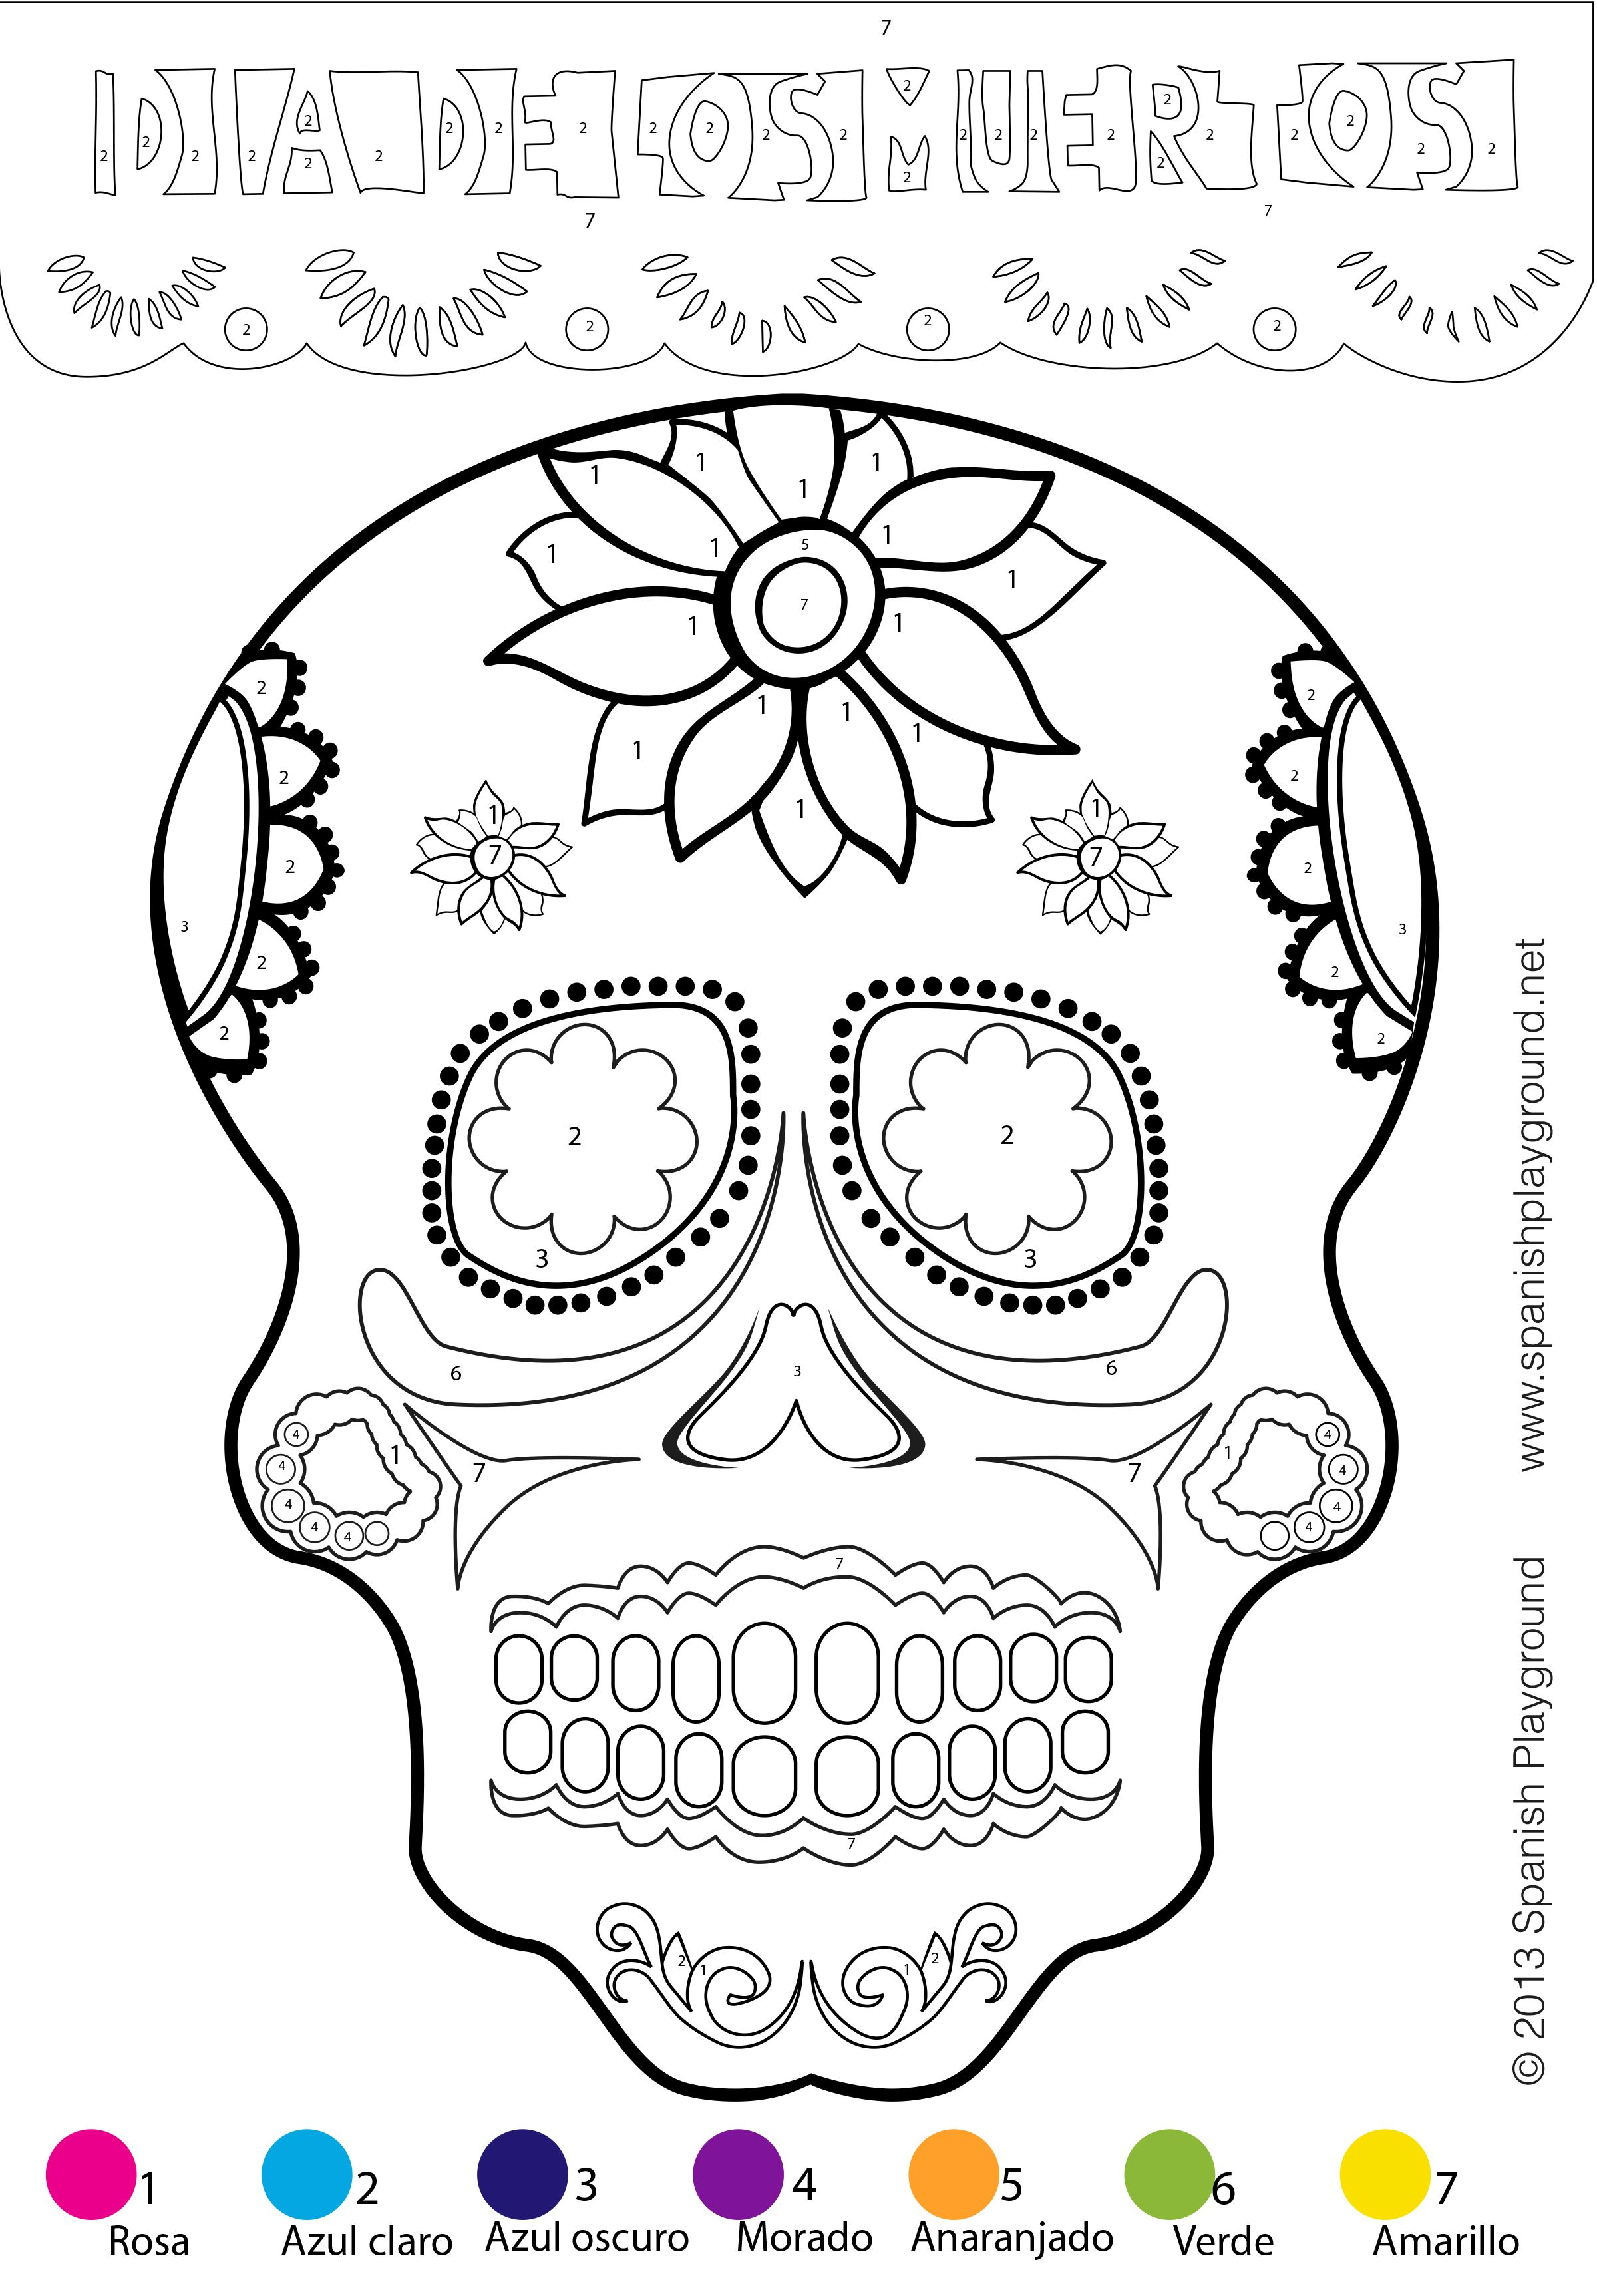 d atilde shy a de los muertos day of the dead writing template dia de pumpkin painting spanish color by number activity for datildeshya de los muertos great to use kids learning spanish for day of the dead